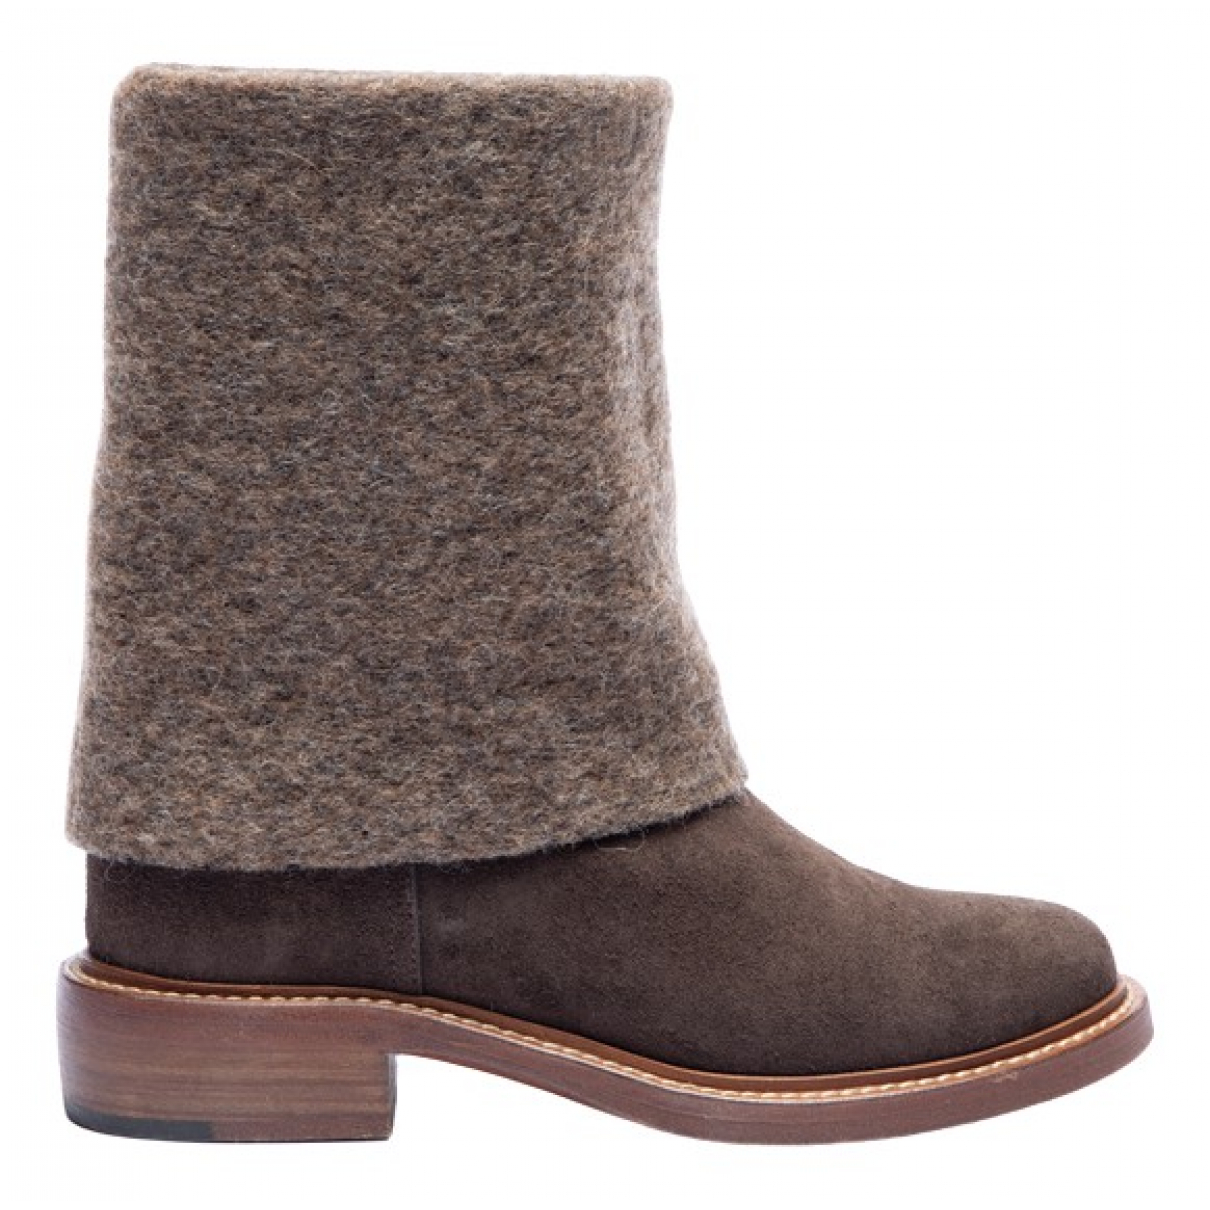 Chanel \N Brown Suede Ankle boots for Women 37.5 EU